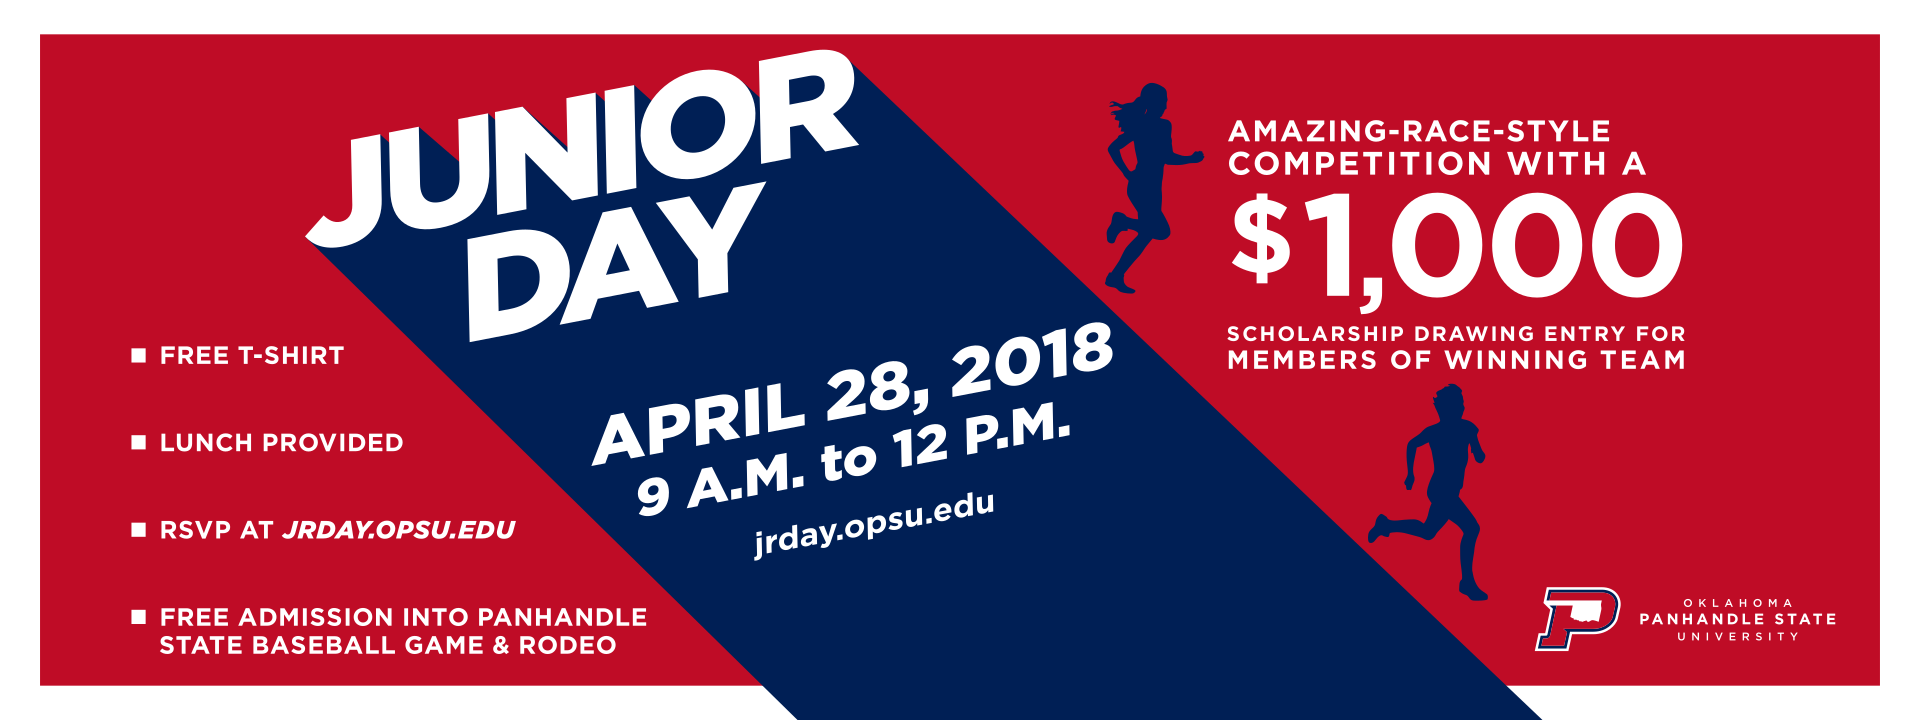 Junior Day - April 28, 2018 9AM to 12PM - AMAZING-RACE-STYLE COMPETITION WITH A $1,000 SCHOLARSHIP DRAWING ENTRY FOR MEMBERS OF WINNING TEAM 